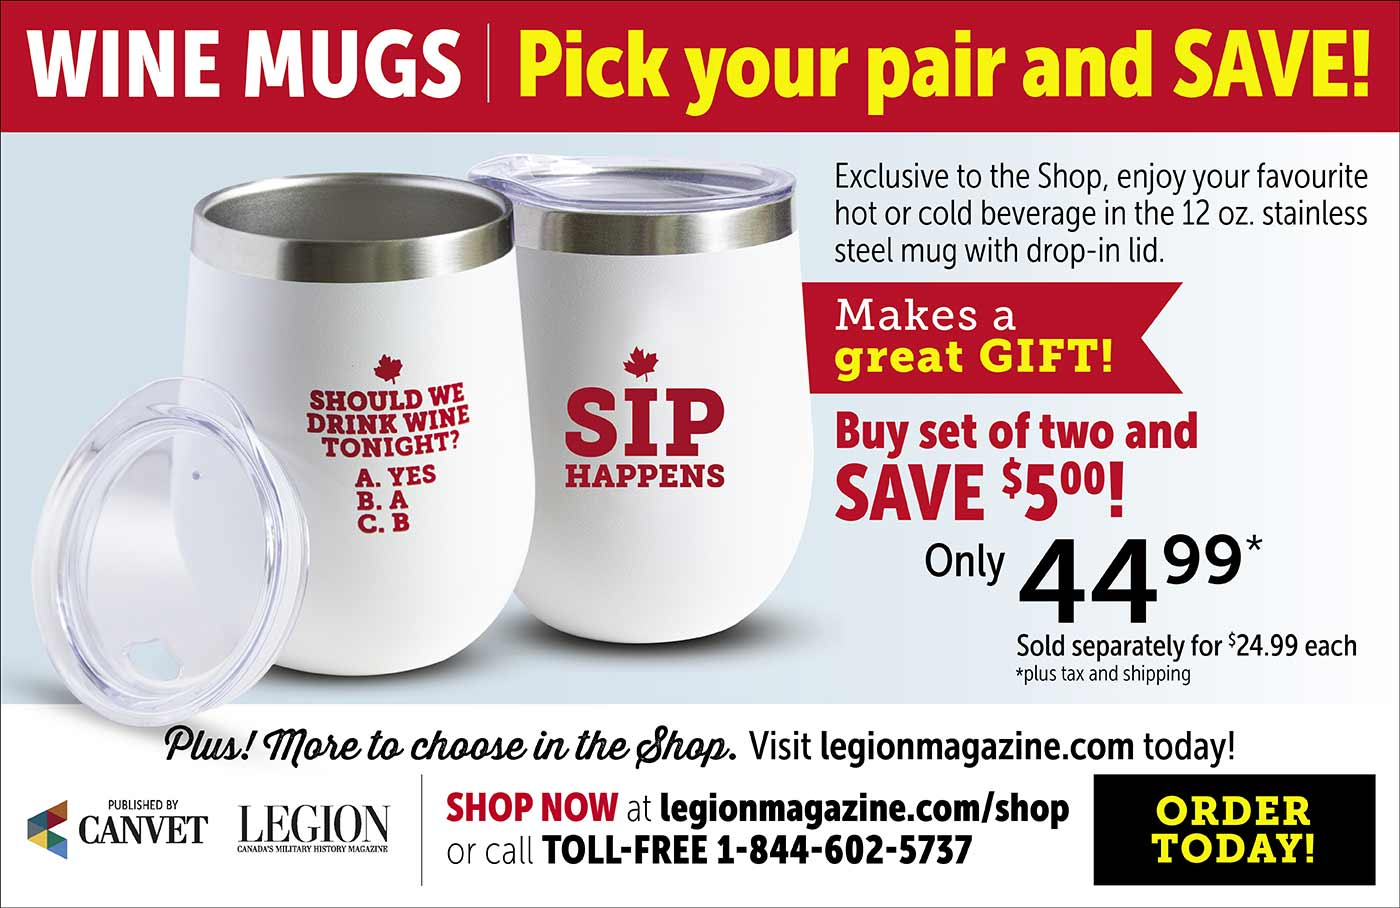 Exclusive to the Shop, enjoy your favourite hot or cold beverage in the 12 oz stainless steel wine mugs. Order today!